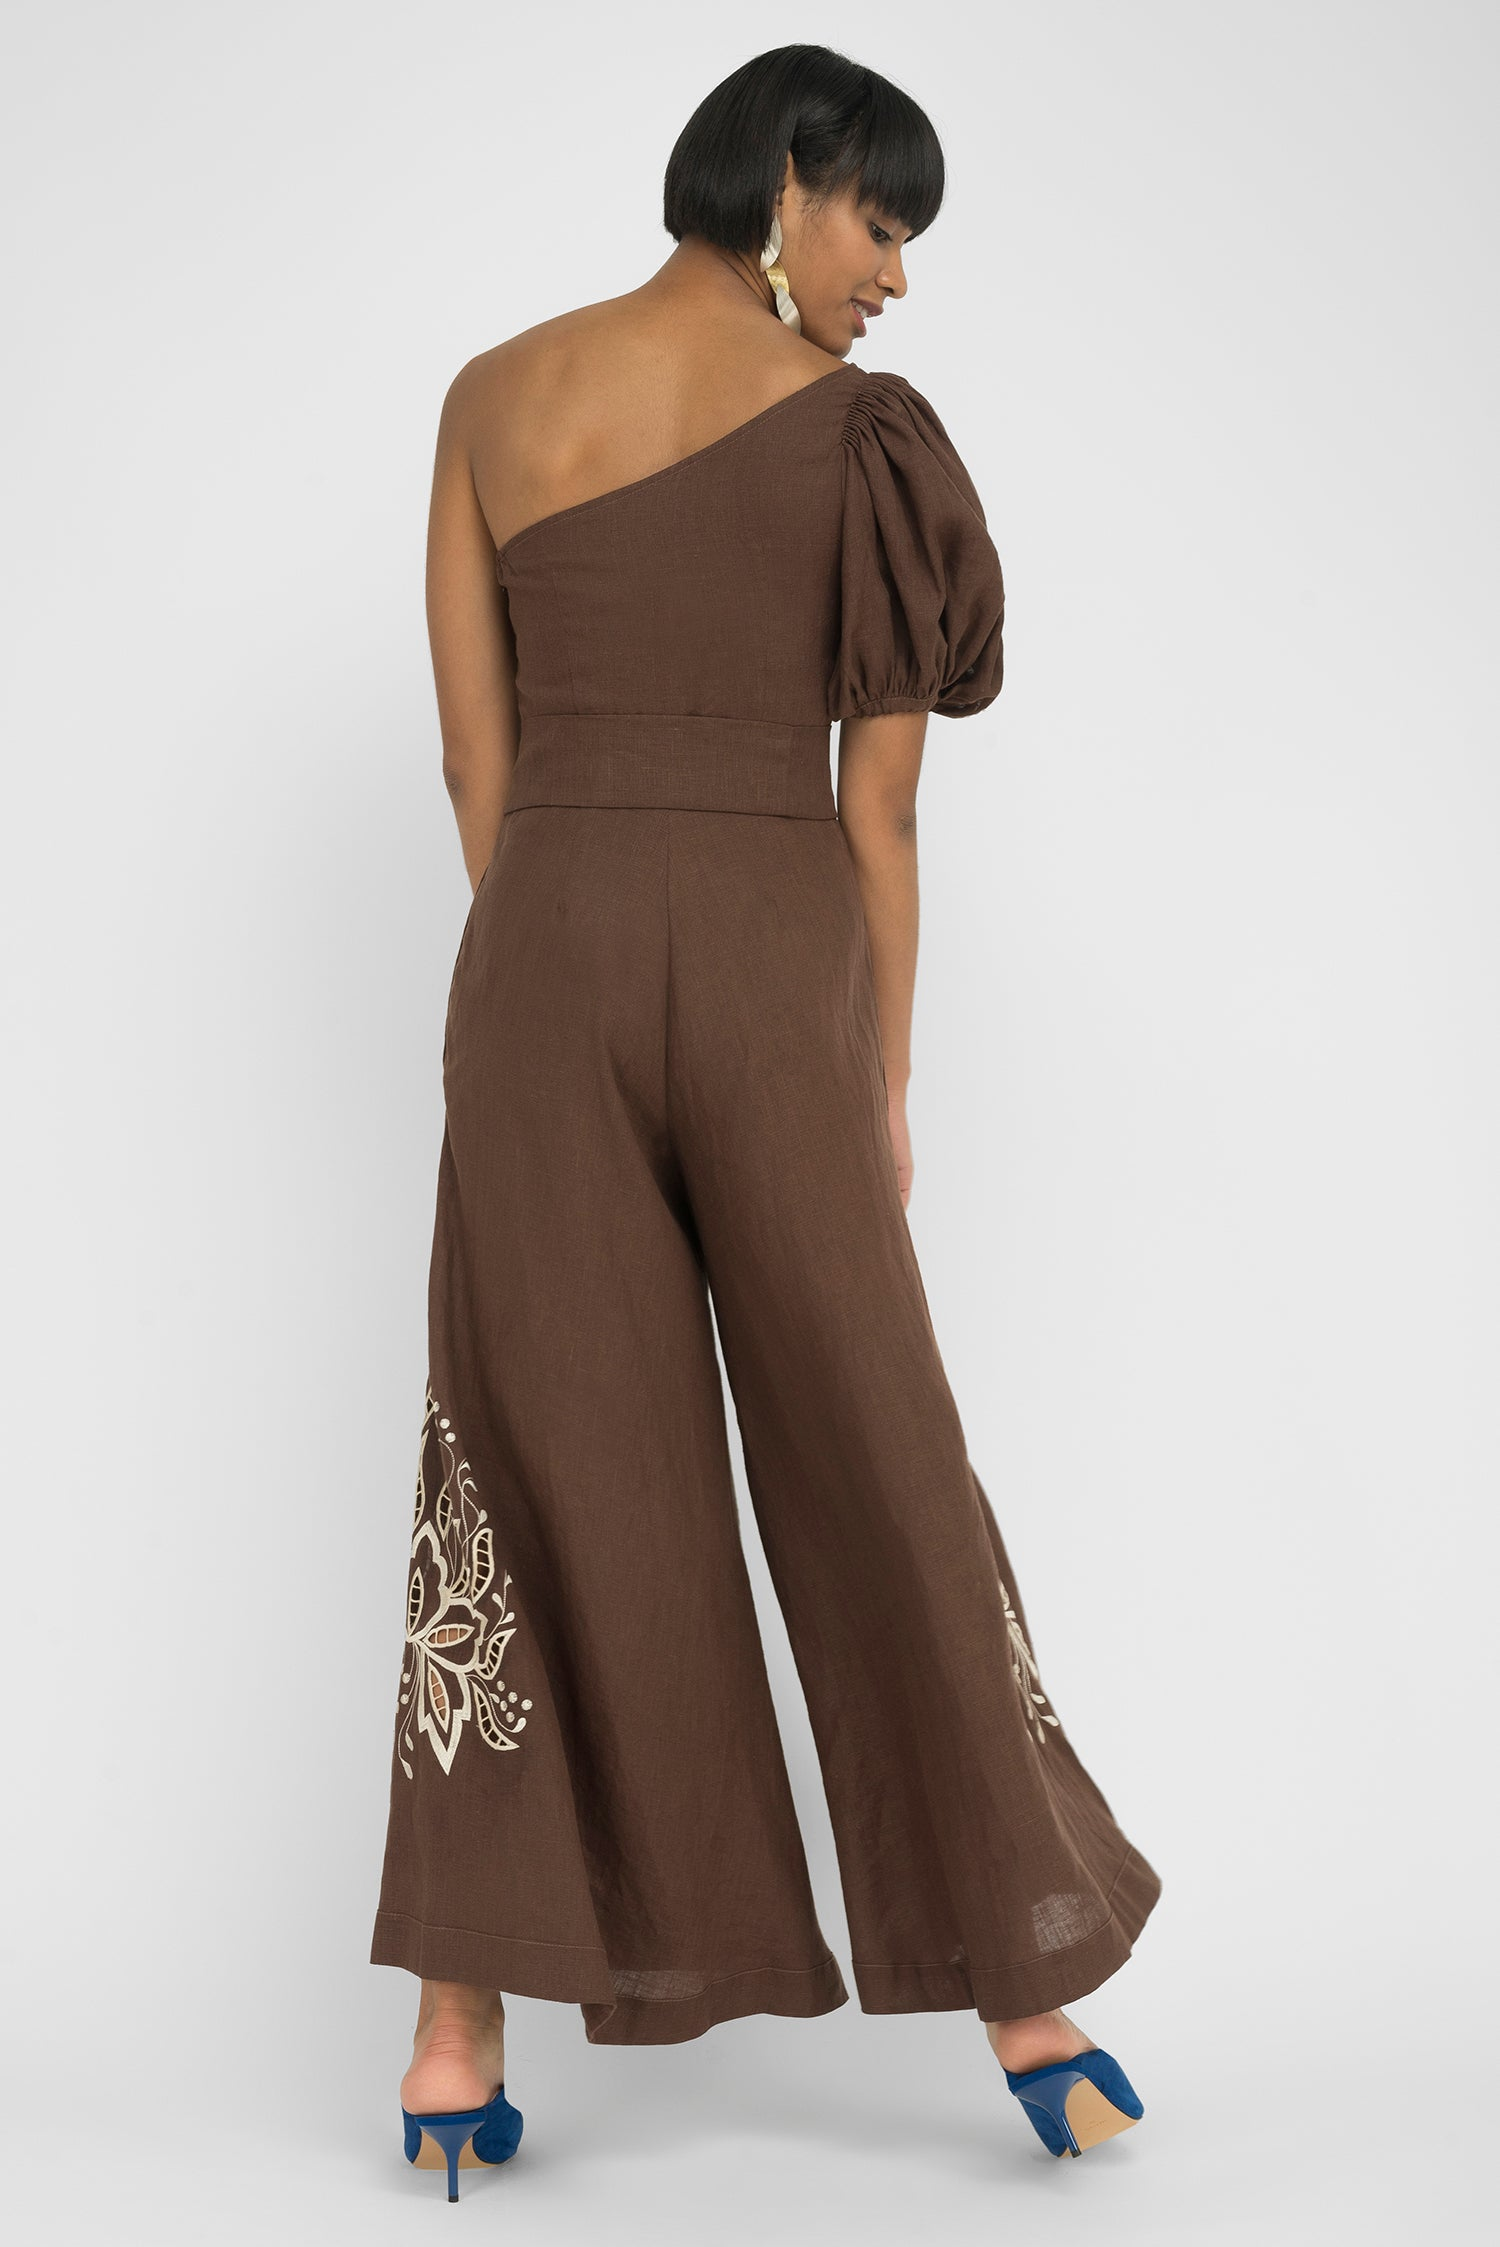 FANM MON JAKO Expresso Linen One Shoulder Embroidered Jumpsuit